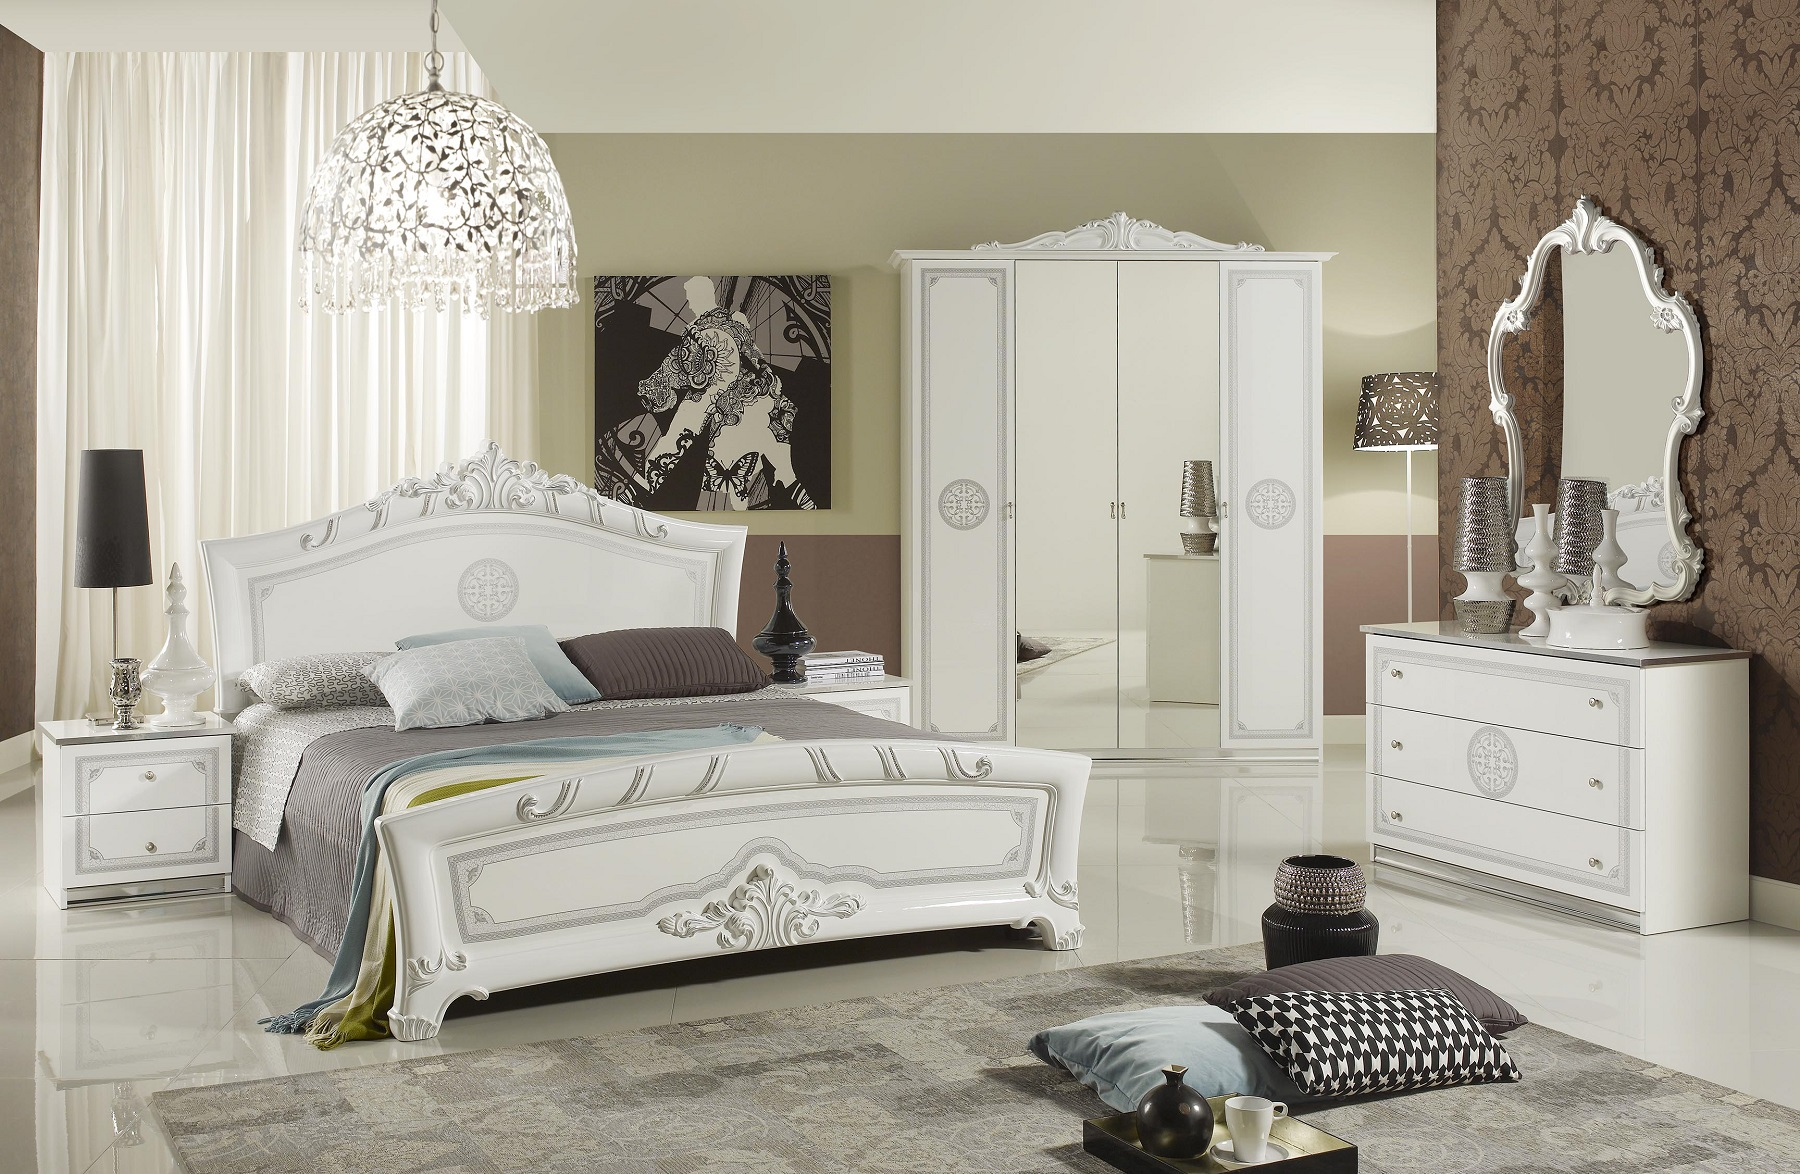 kommode great weiss silber klassik barock italienische m bel xp pkgrccom1. Black Bedroom Furniture Sets. Home Design Ideas